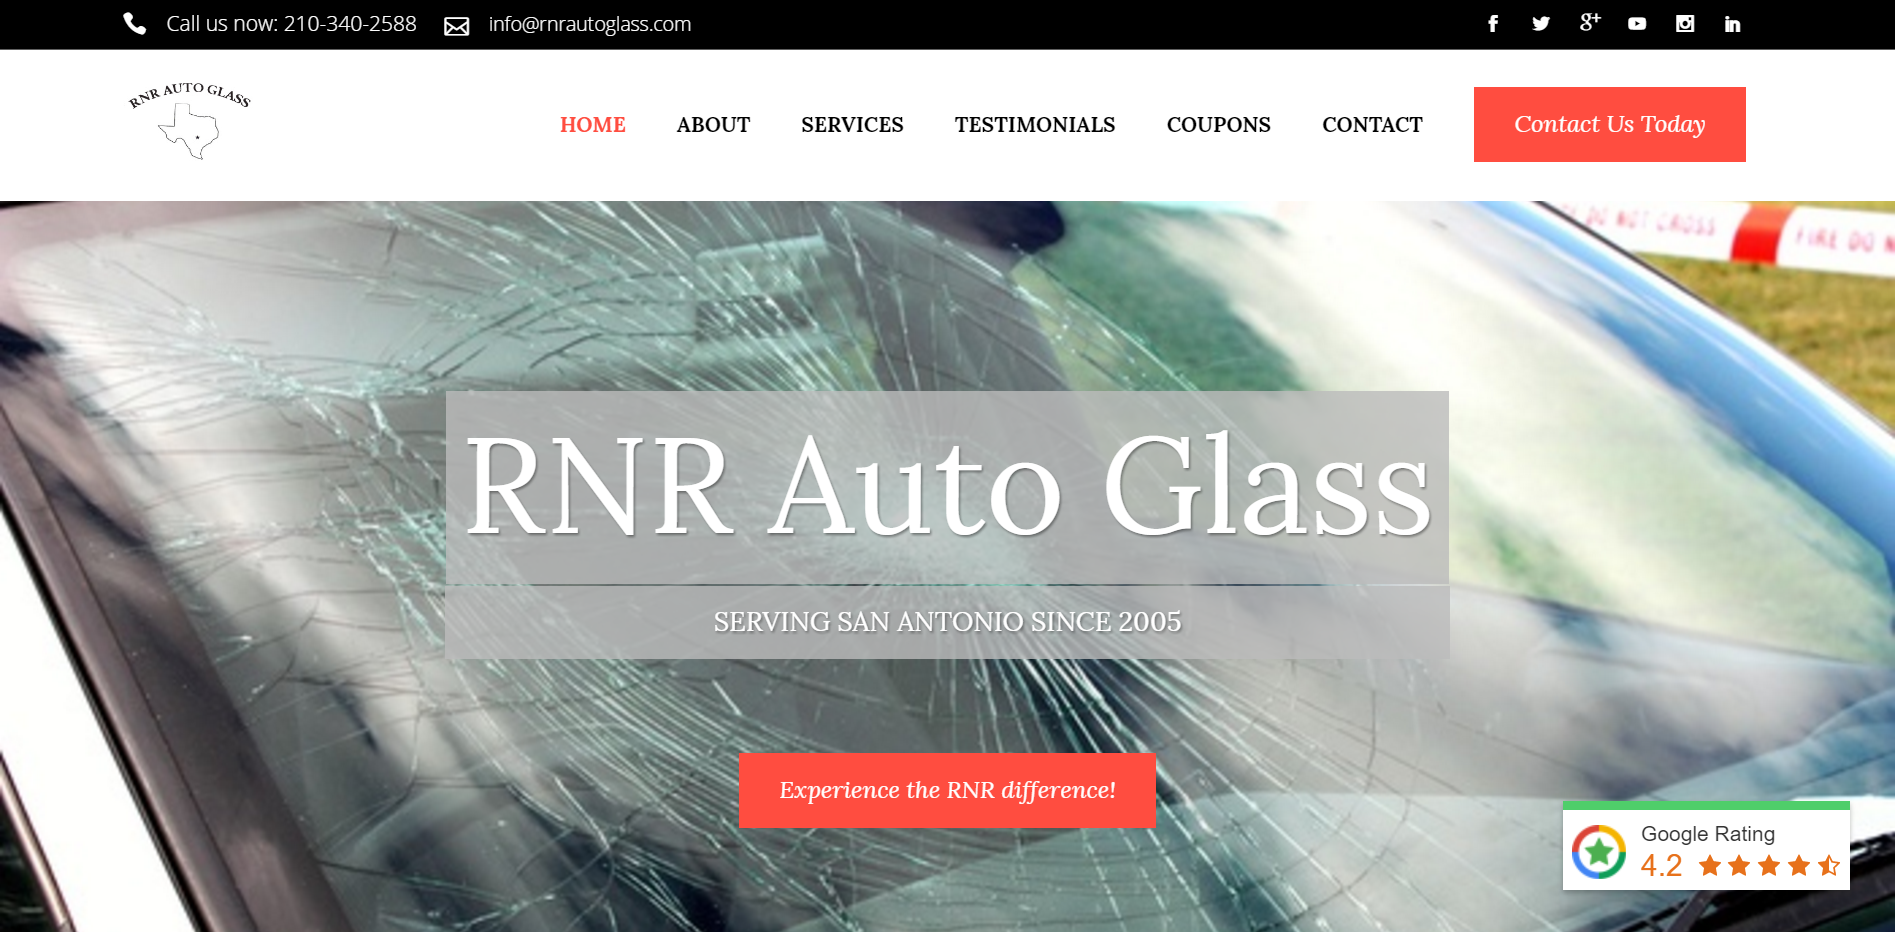 RNR Auto Glass Website Odd Duck Media